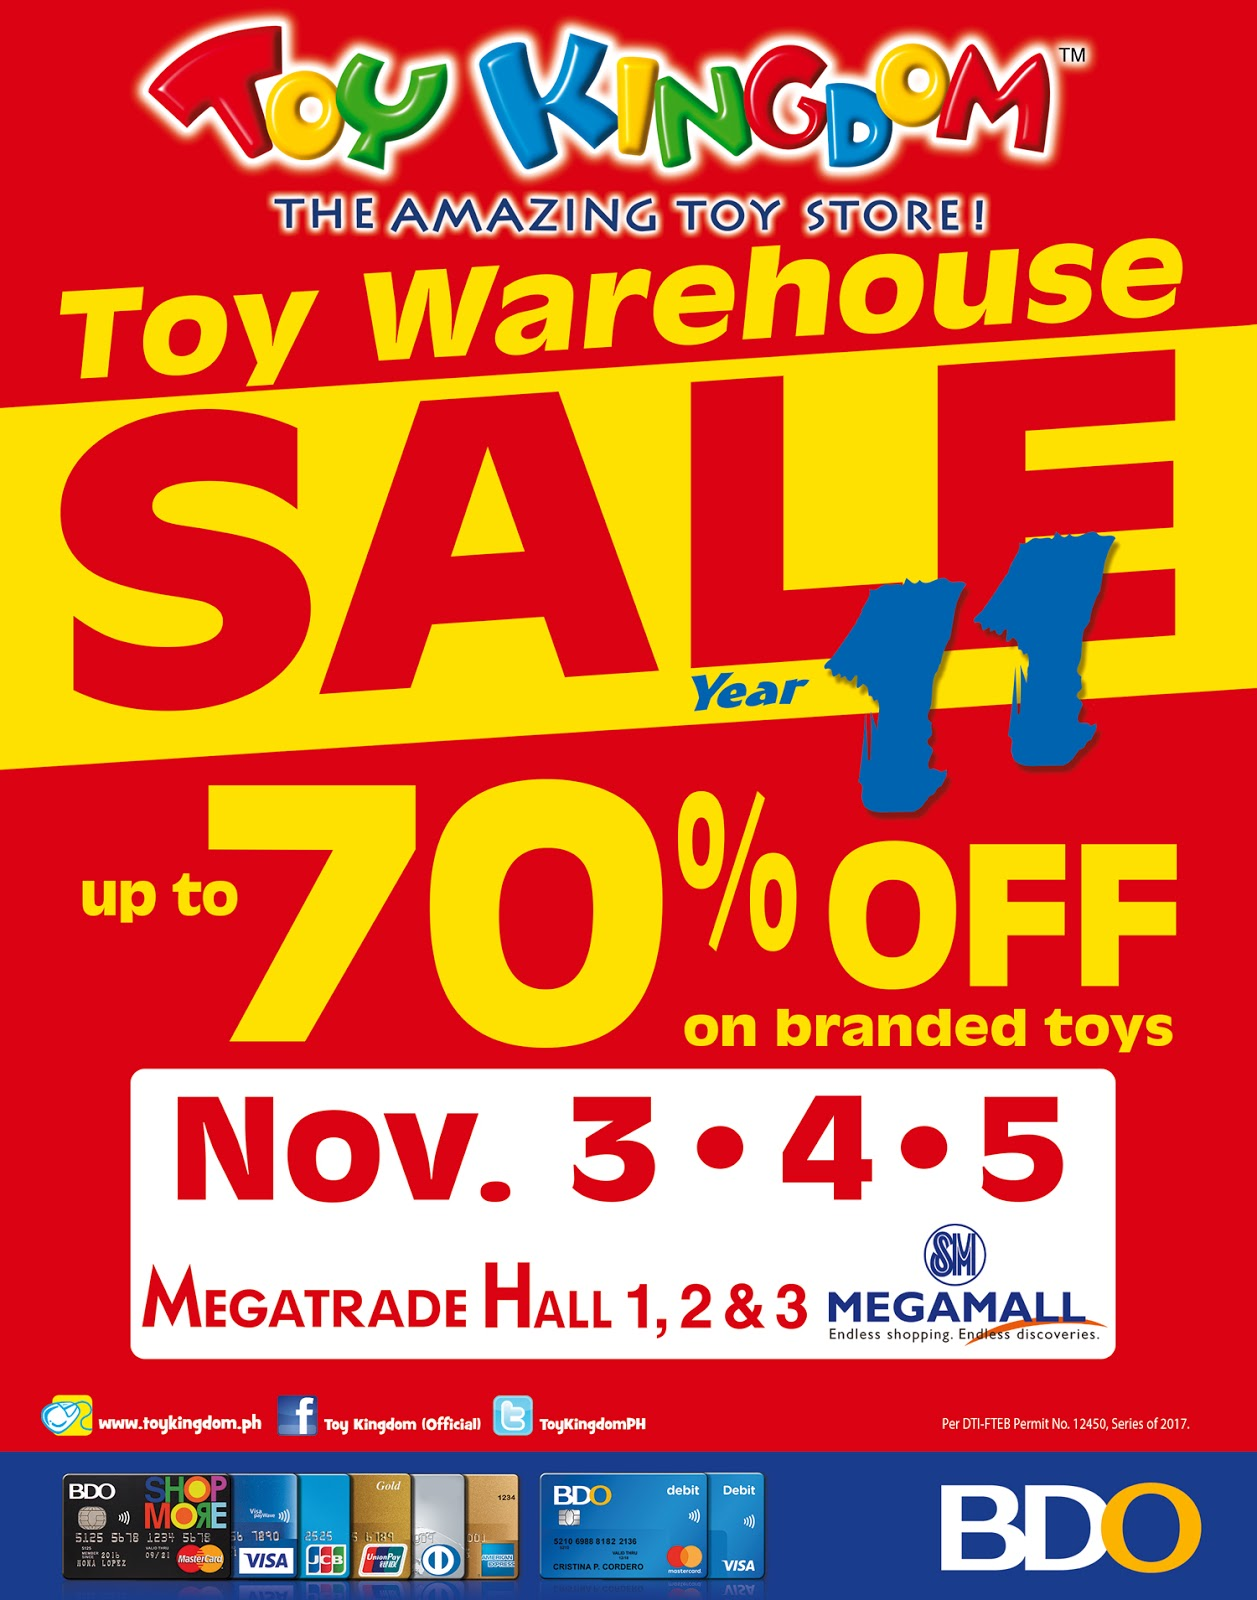 Manila Life Toy Kingdom Toy Warehouse Sale at SM Megatrade this